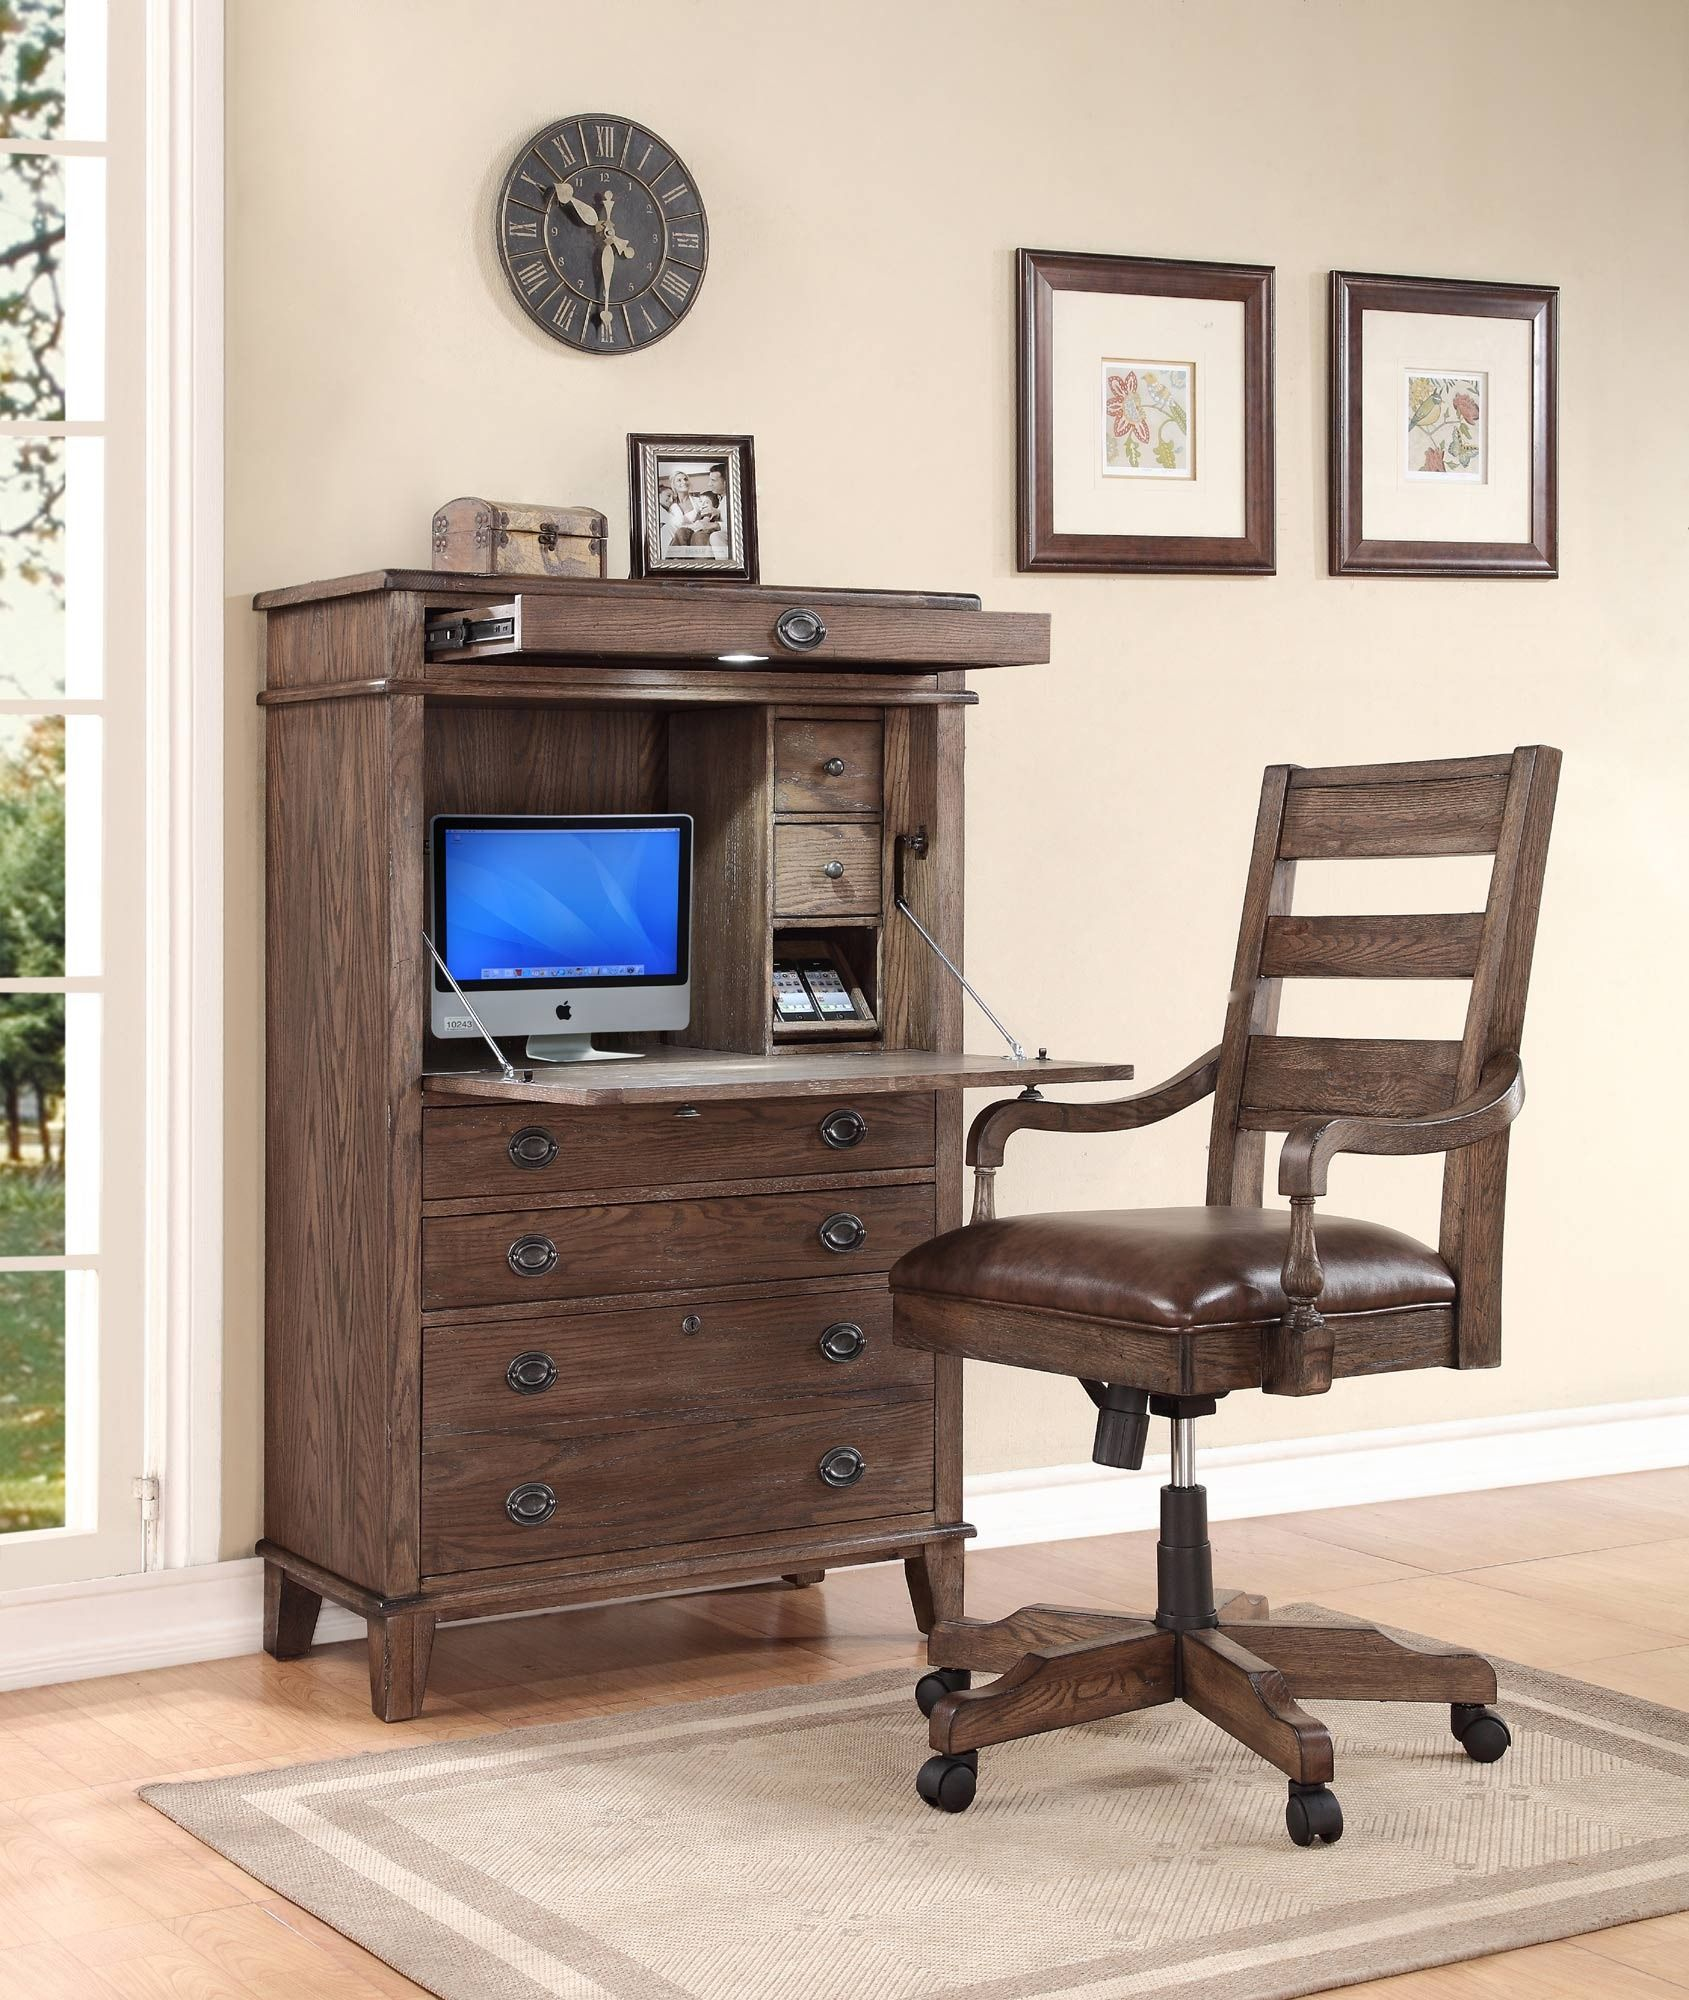 Harrison Flats Secretary Desk Home Office Chairs Furniture Vancouver Home